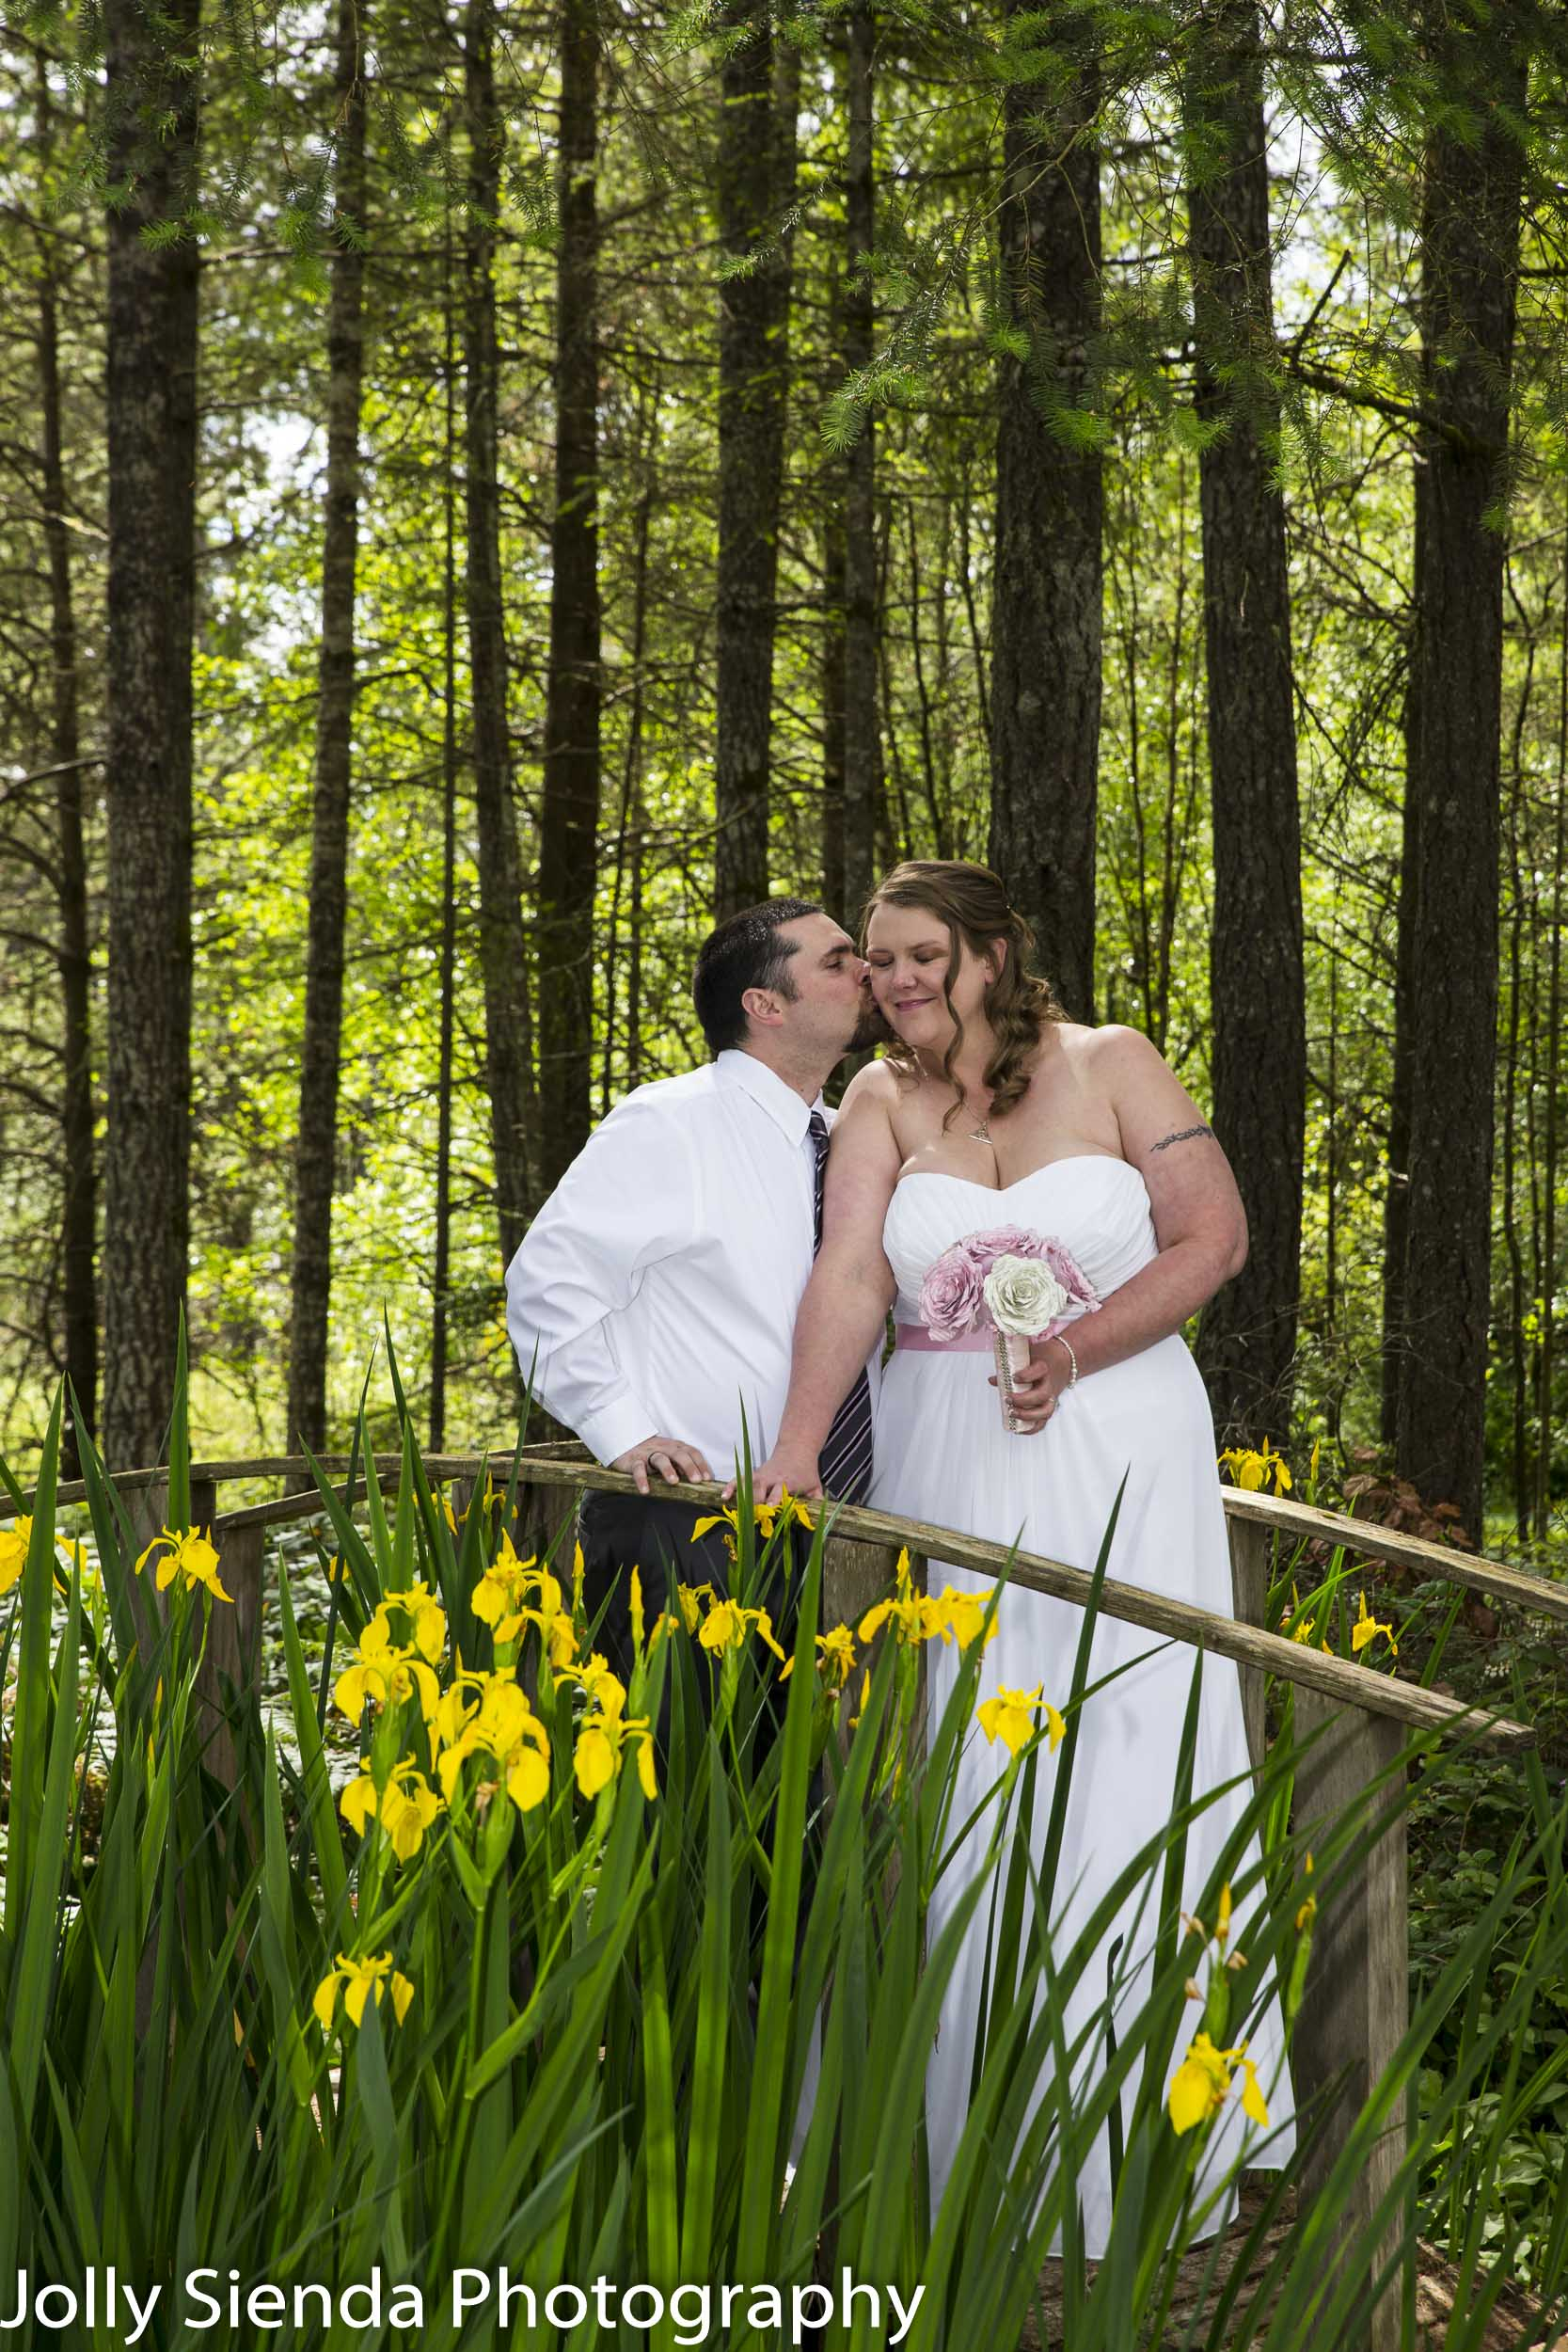 Bride and groom outdoor portrait wedding photography